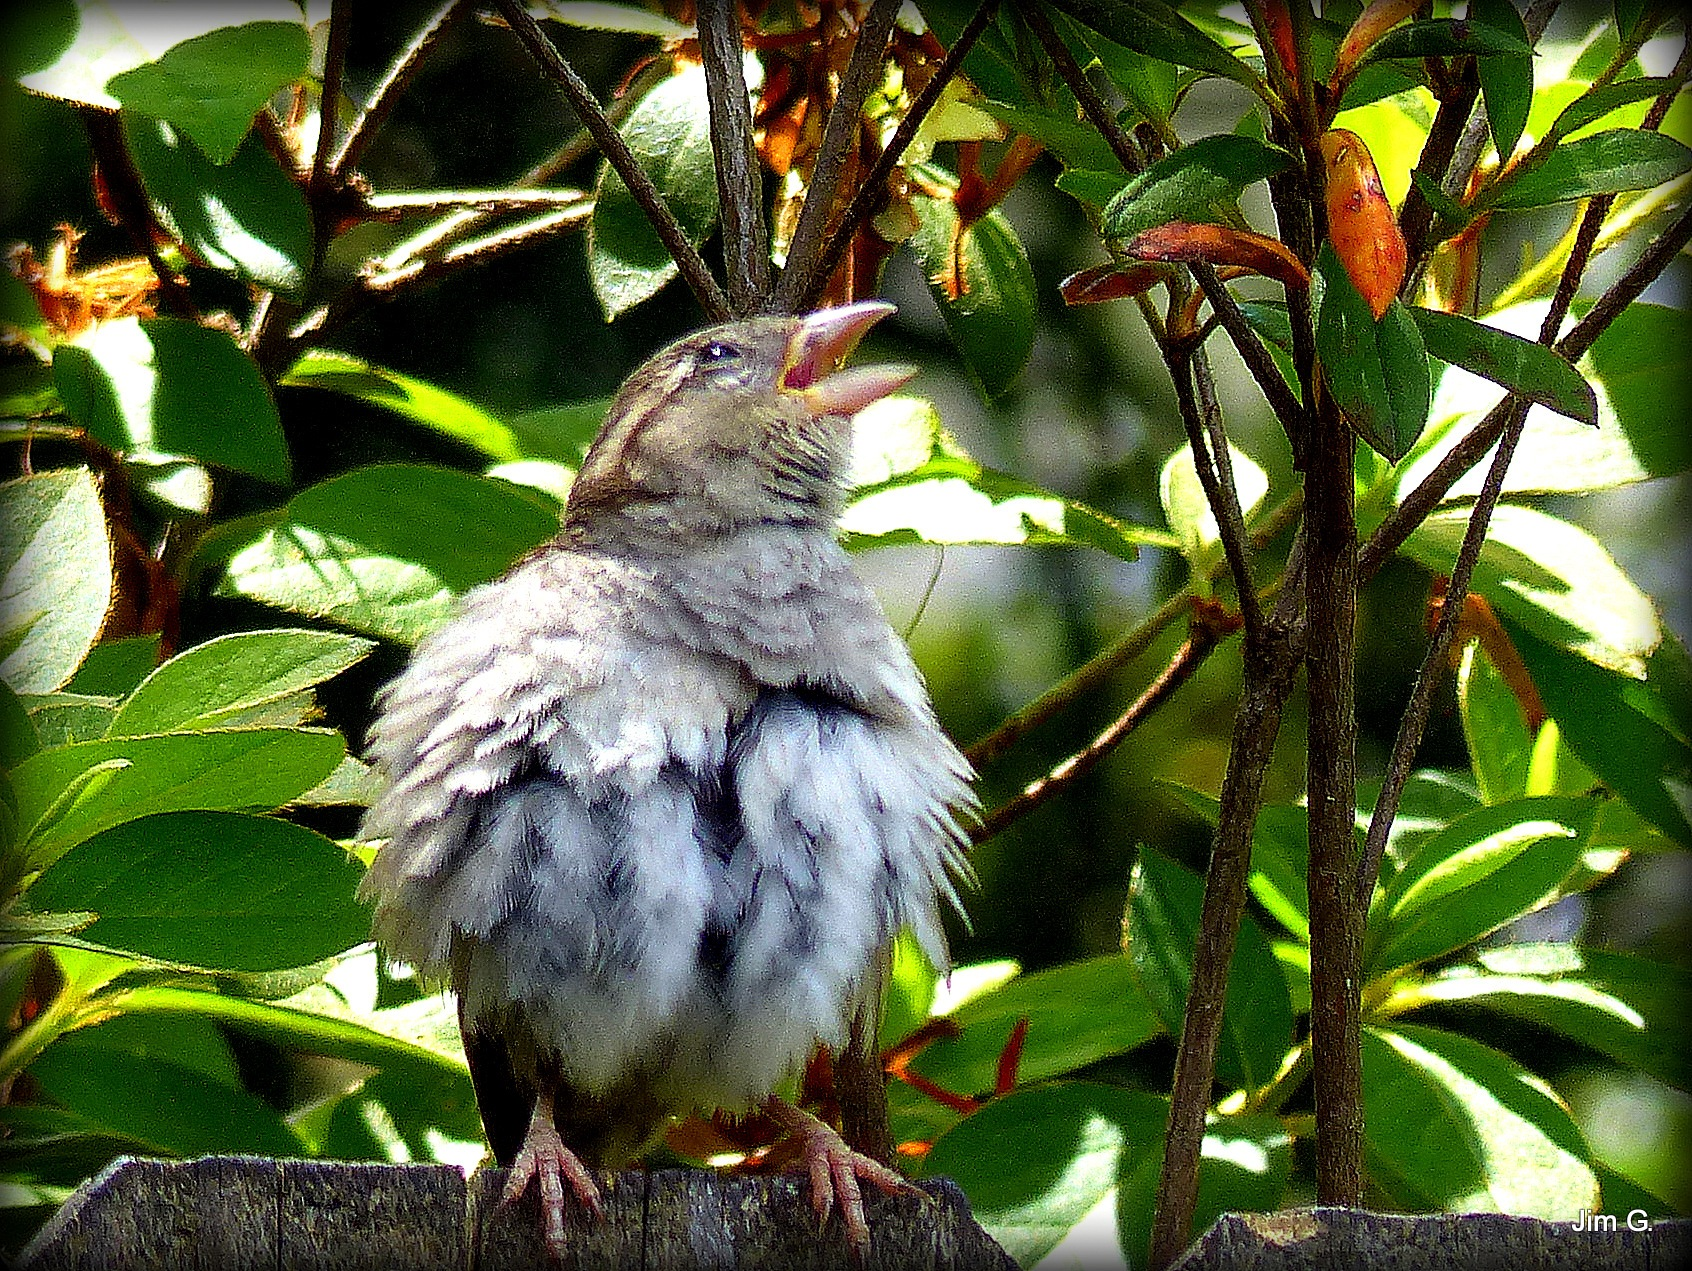 Sparrow with Feathers Roused by Jim Graham